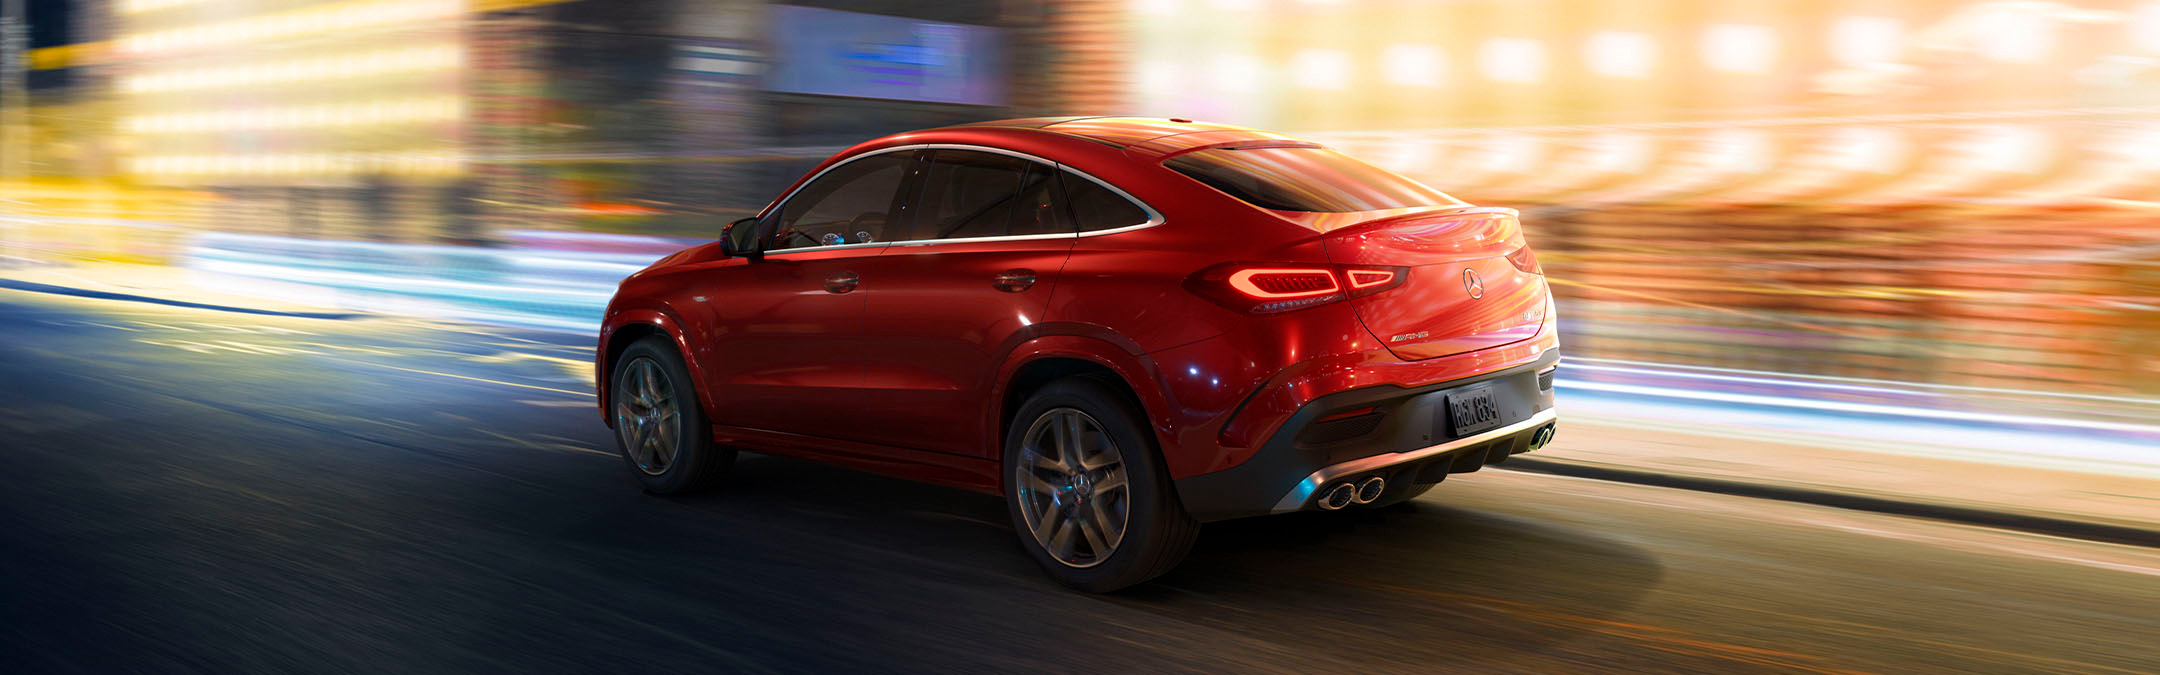 The Amg Gle Coupe Suv Mercedes Benz Usa